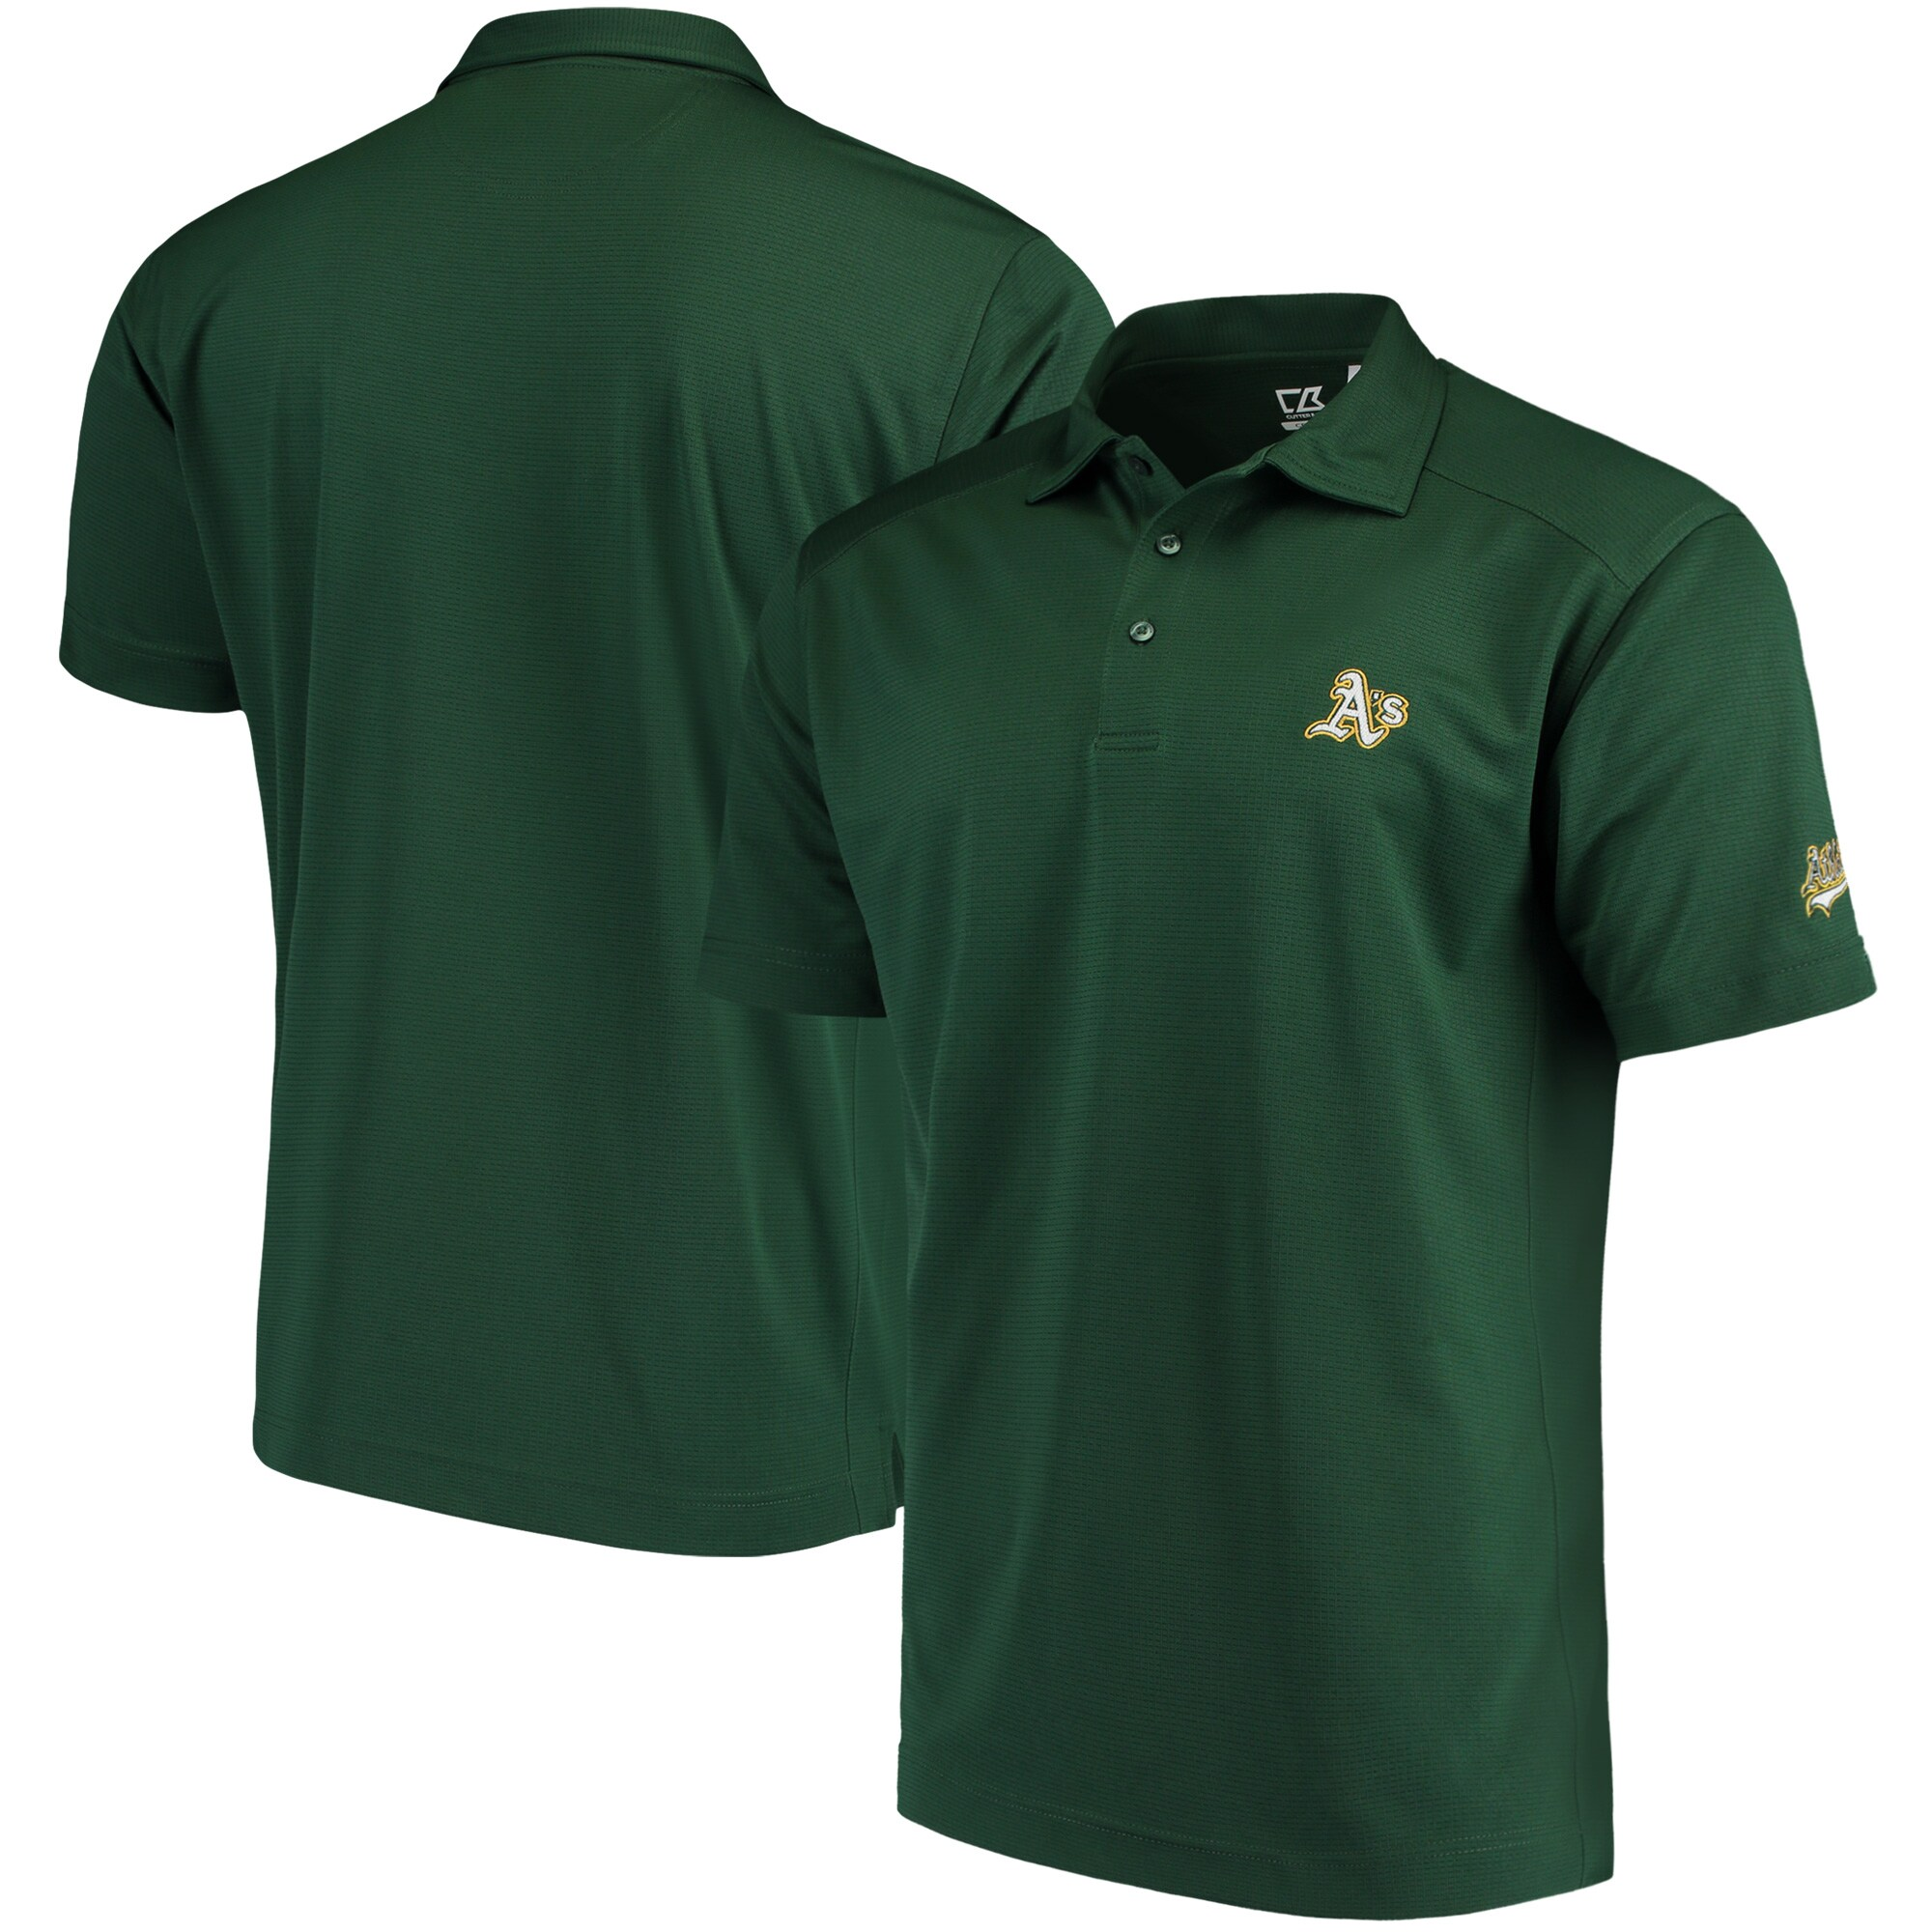 Oakland Athletics CBUK by Cutter & Buck Genre DryTec Polo - Green